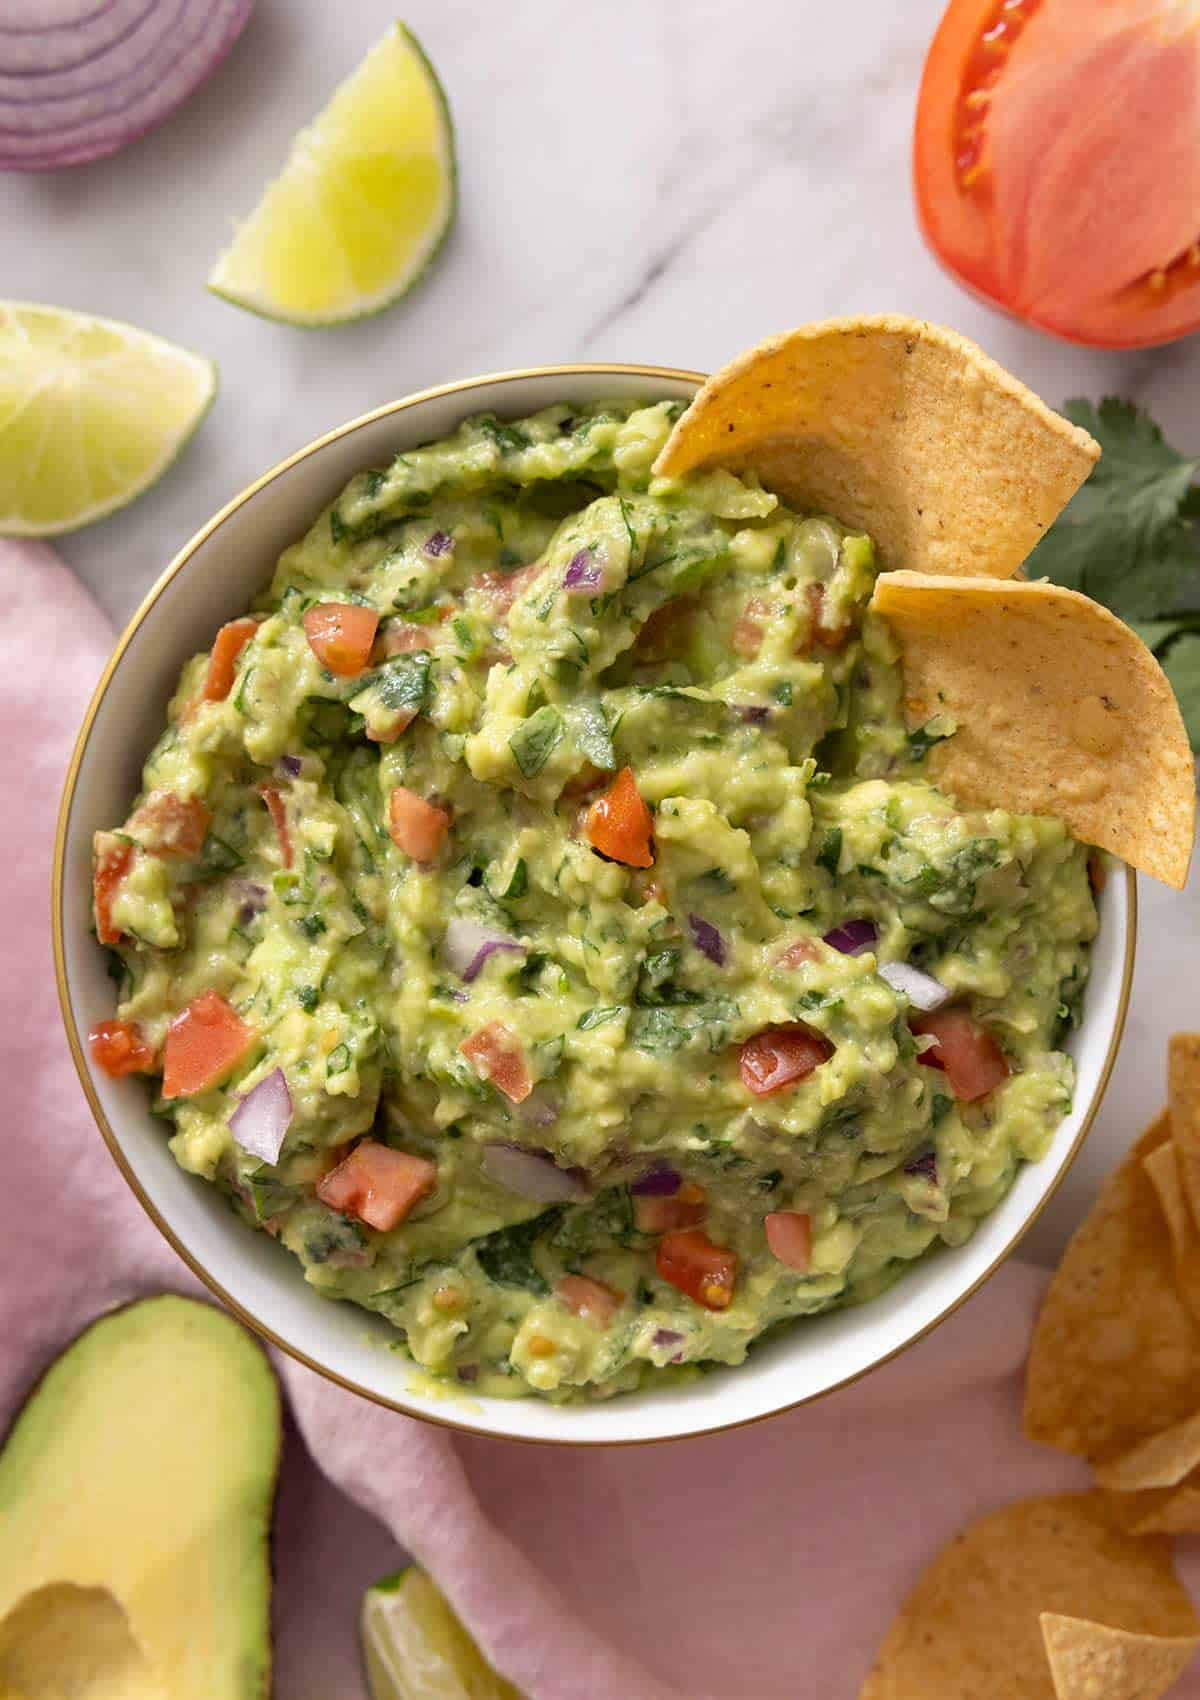 An overhead shot of a bowl of guacamole with tortilla chips at the side